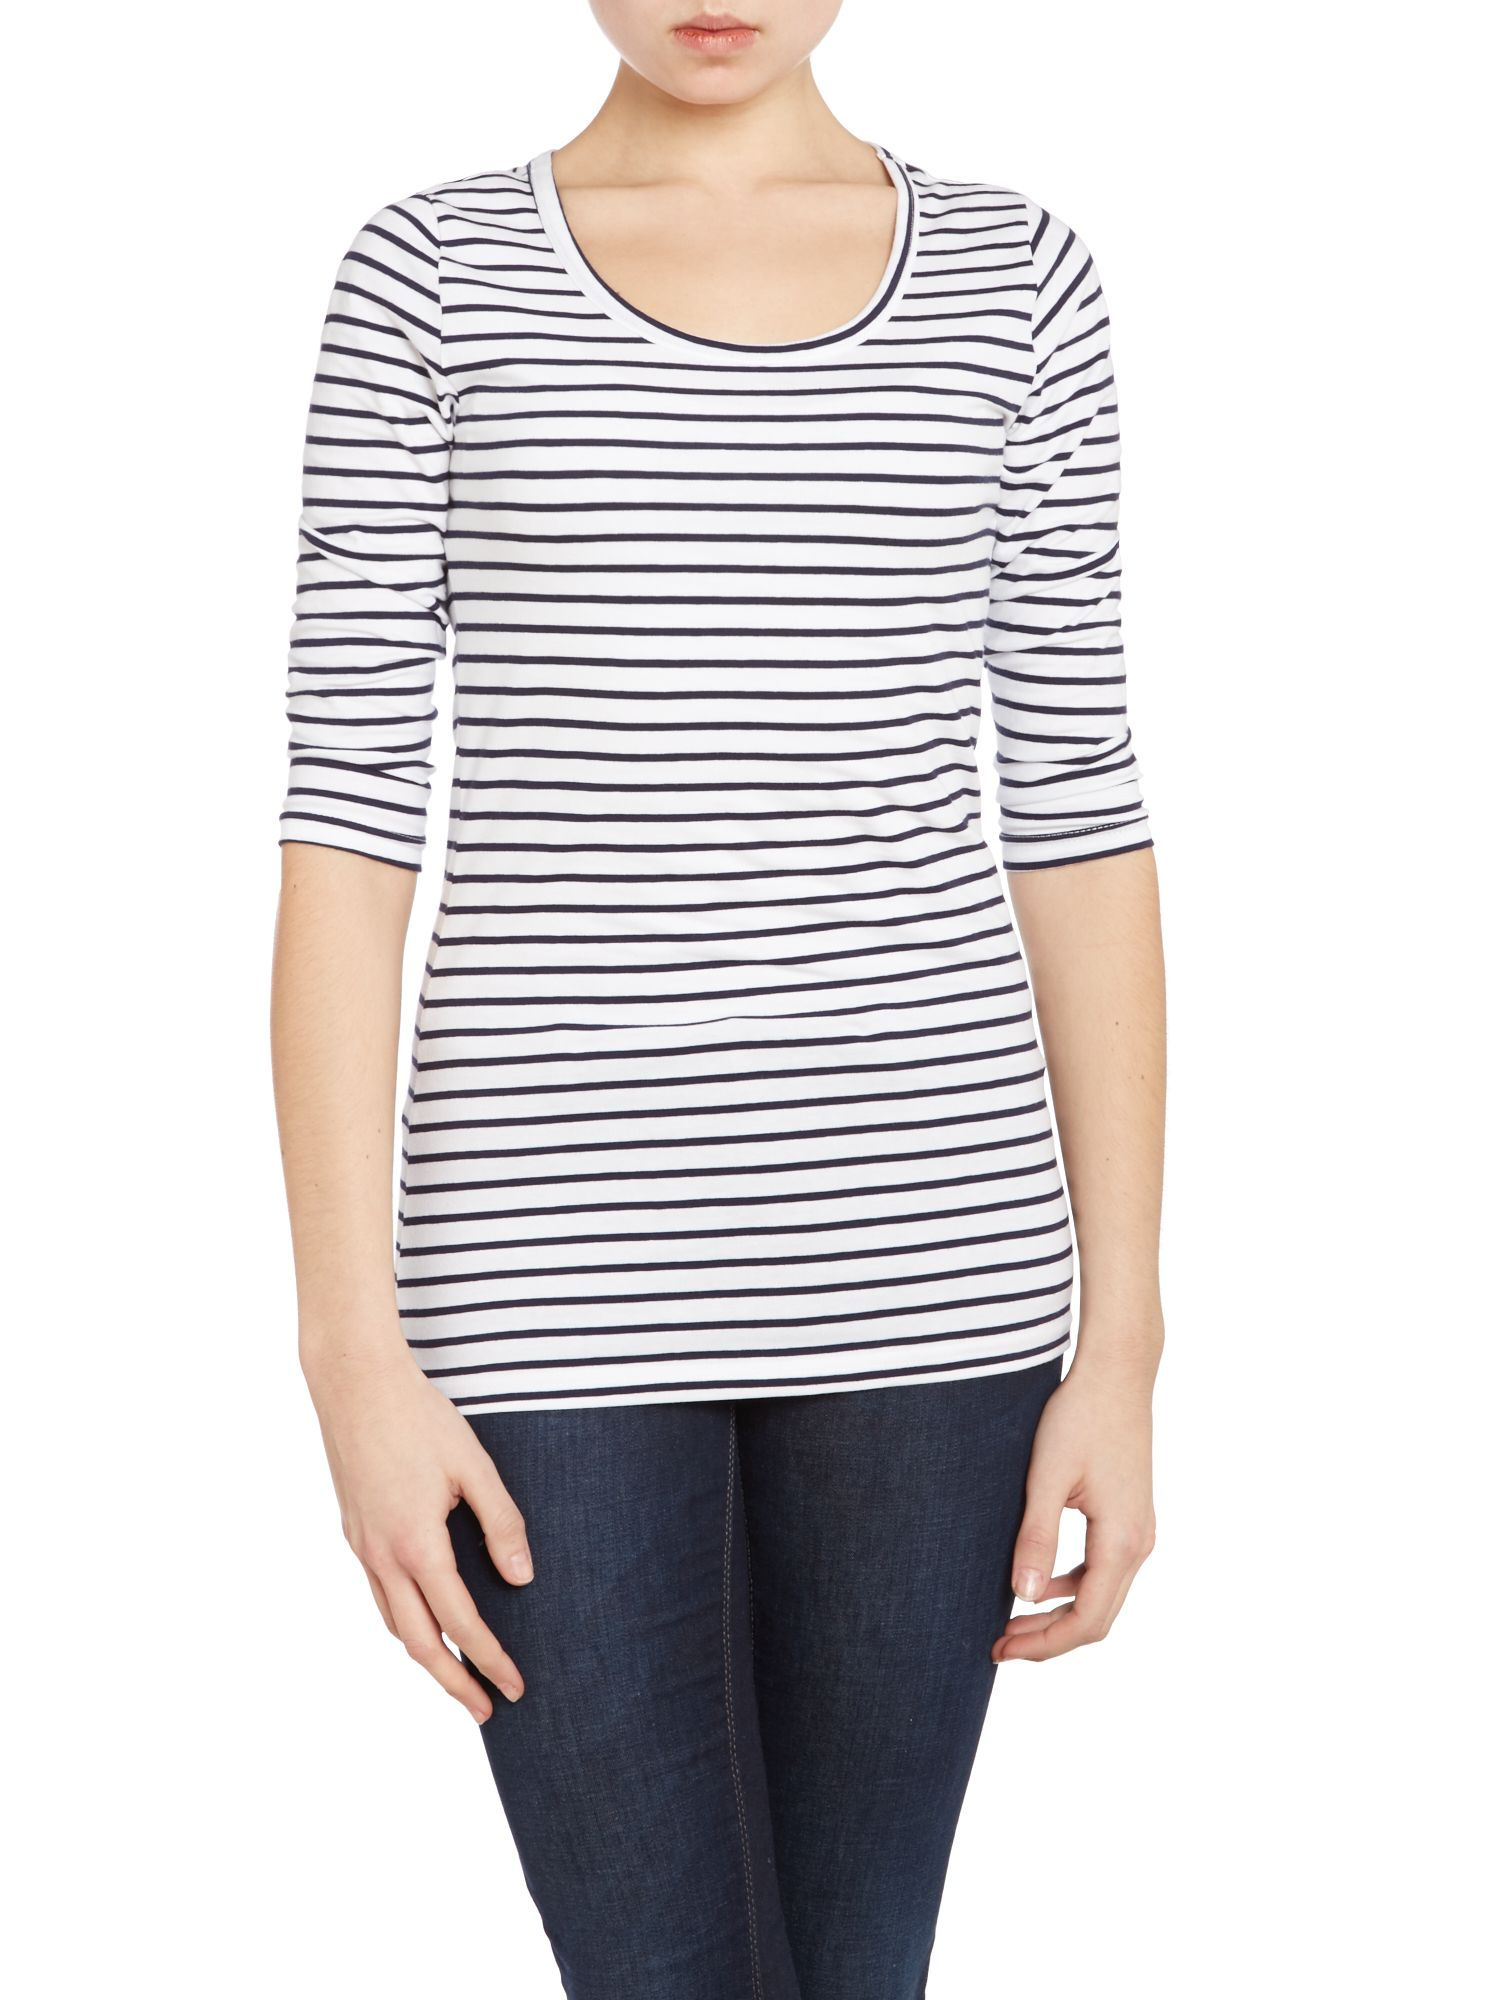 Noos crew neck stripe t shirt